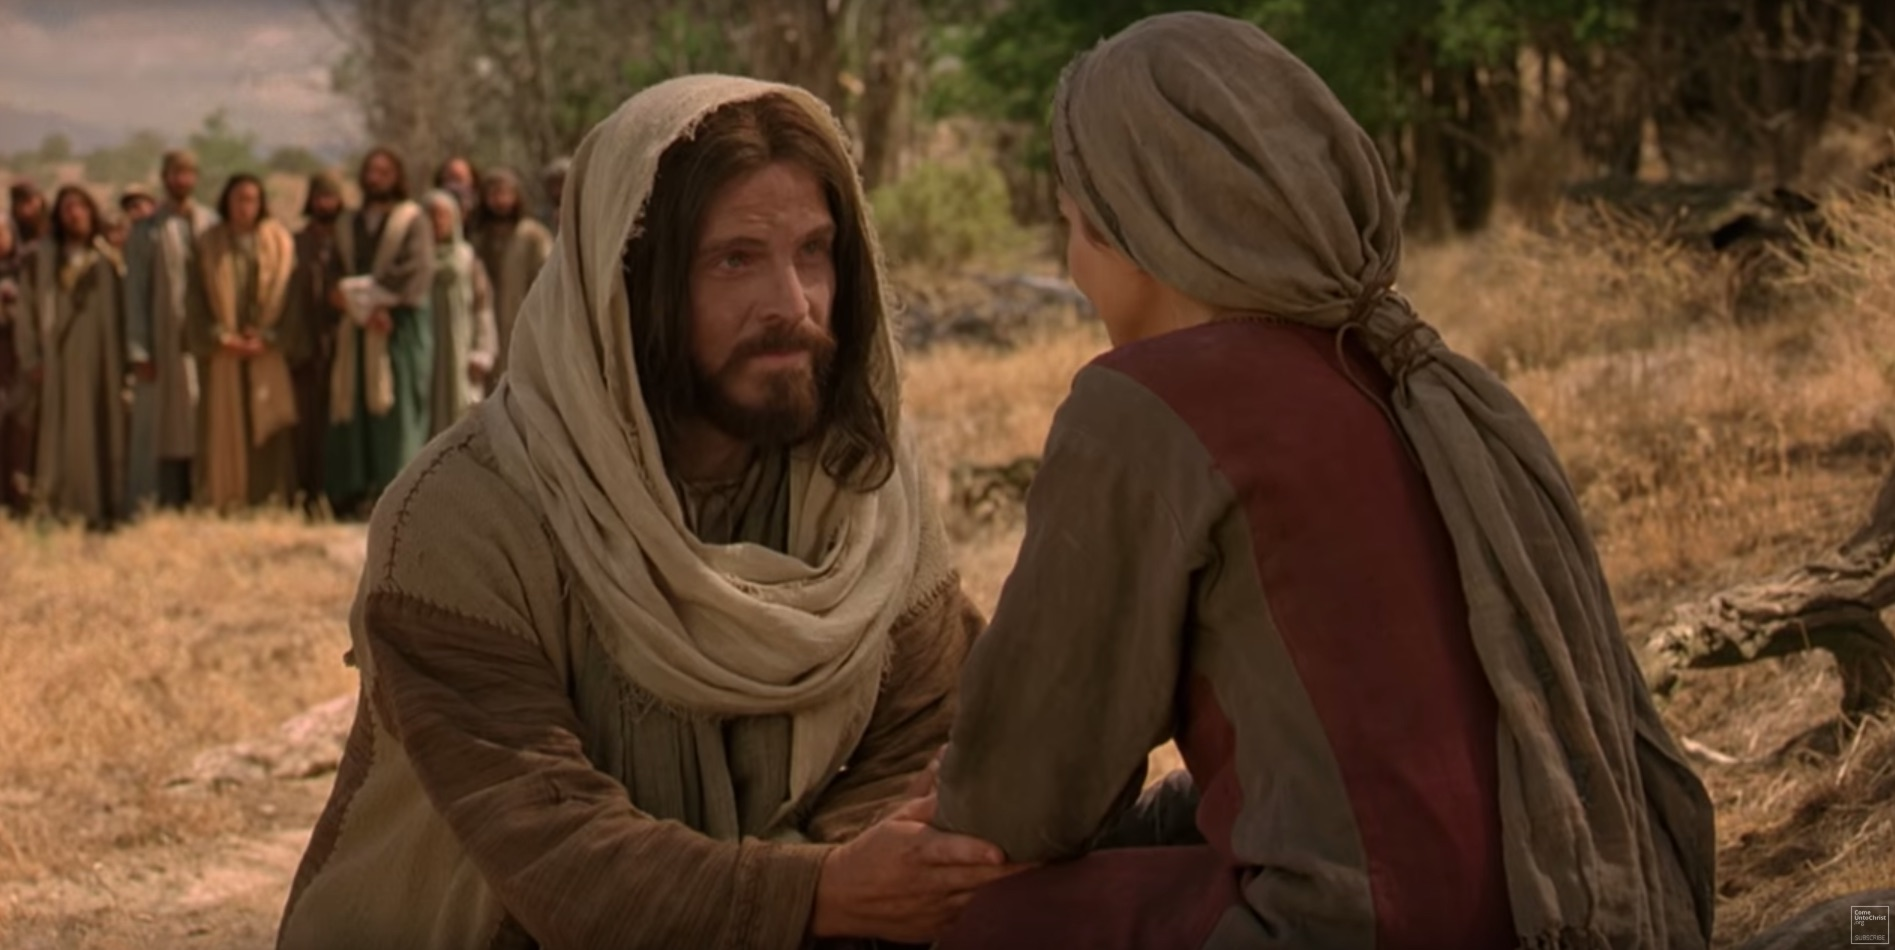 The Church released a new Easter message about the Savior, His Atoning sacrifice and the Resurrection.